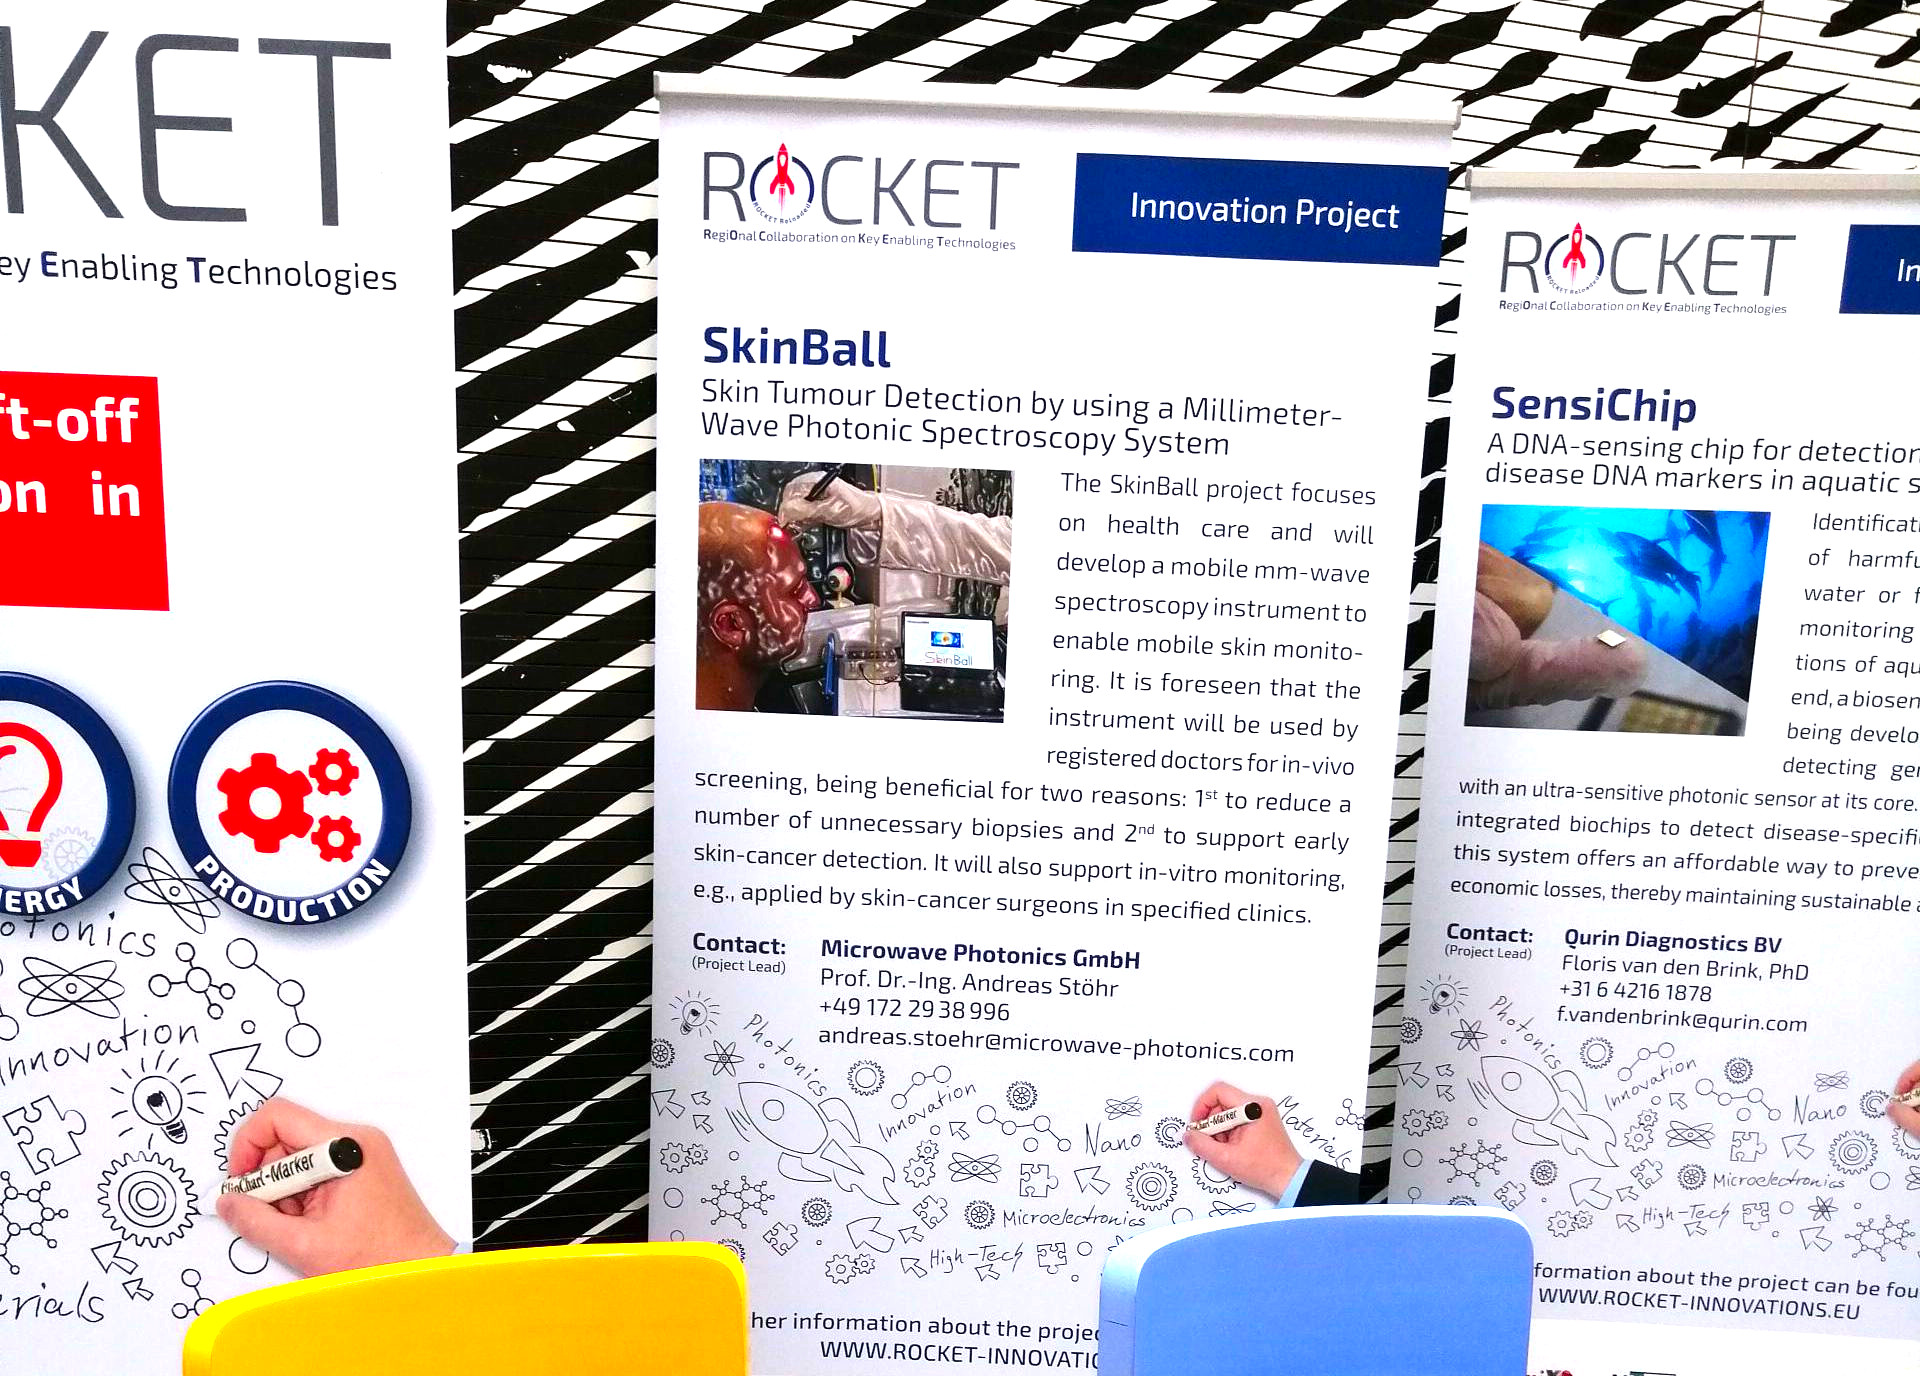 Project exhibition and SkinBall booth at the ROCKET event in Ulft, the Netherlands.